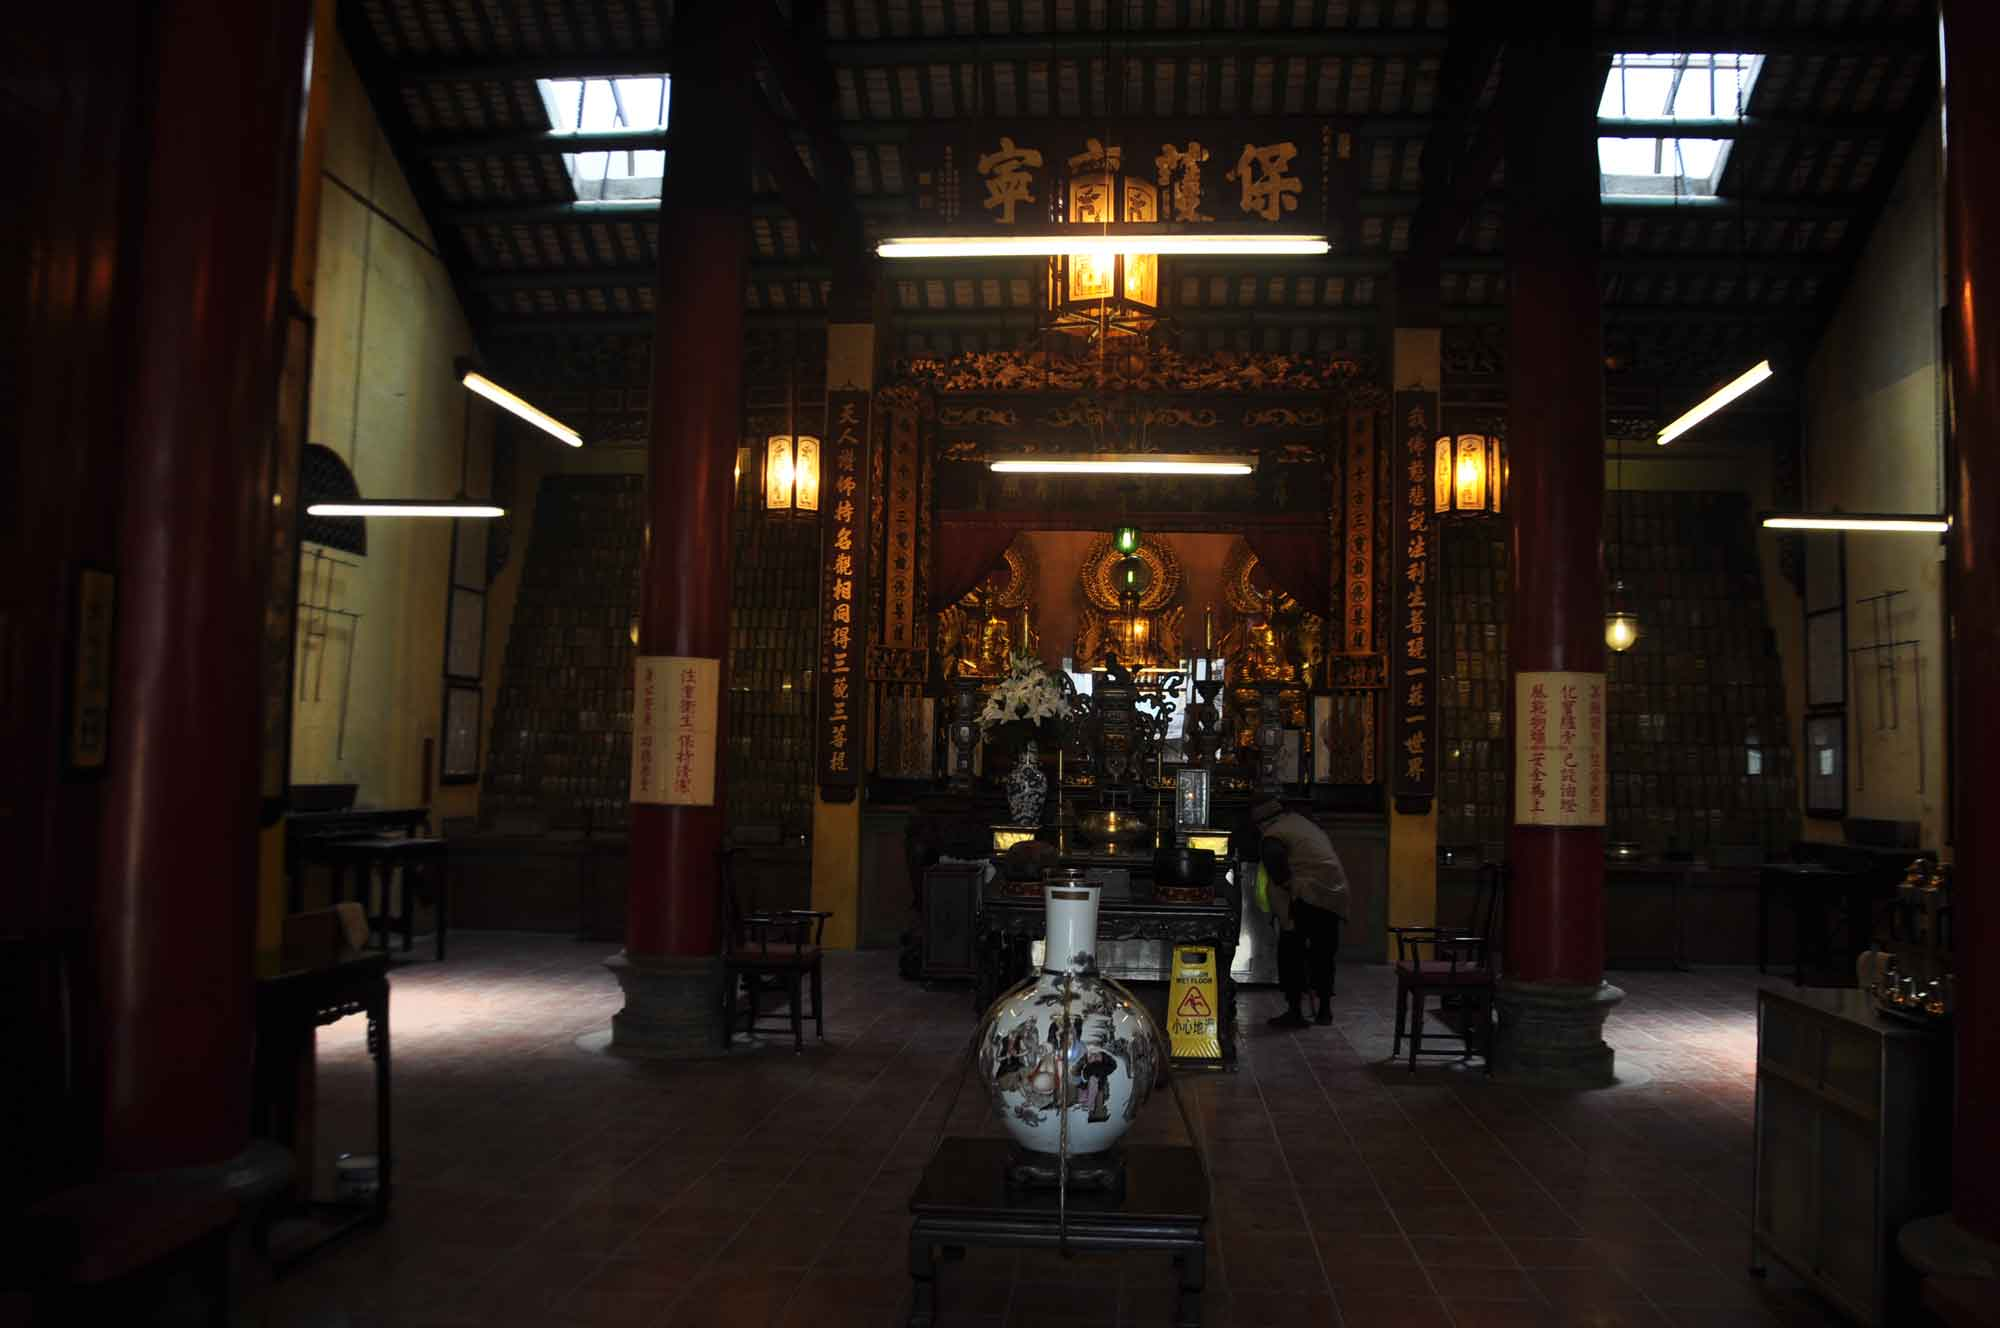 Temple of the King of Medicine interior